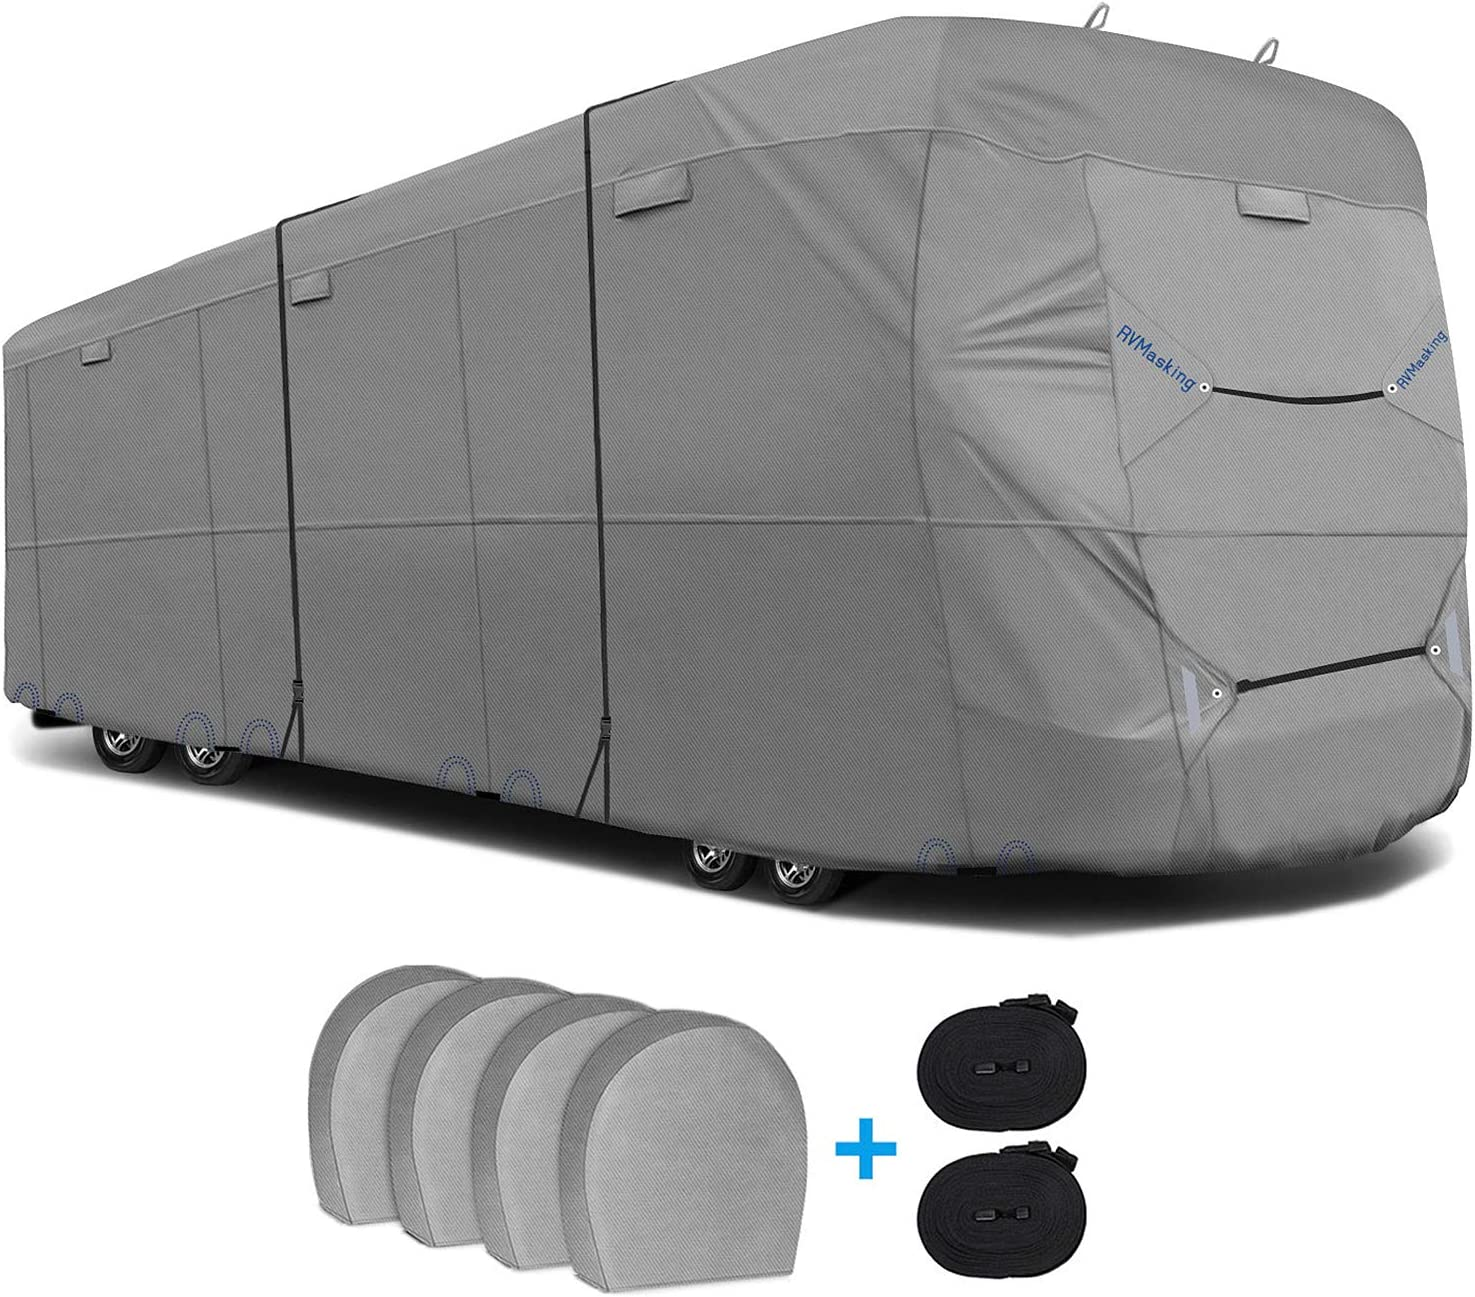 RVMasking 6 Layers Top Class A Rv Cover with 4 Tire Covers, 34.1-38 ft